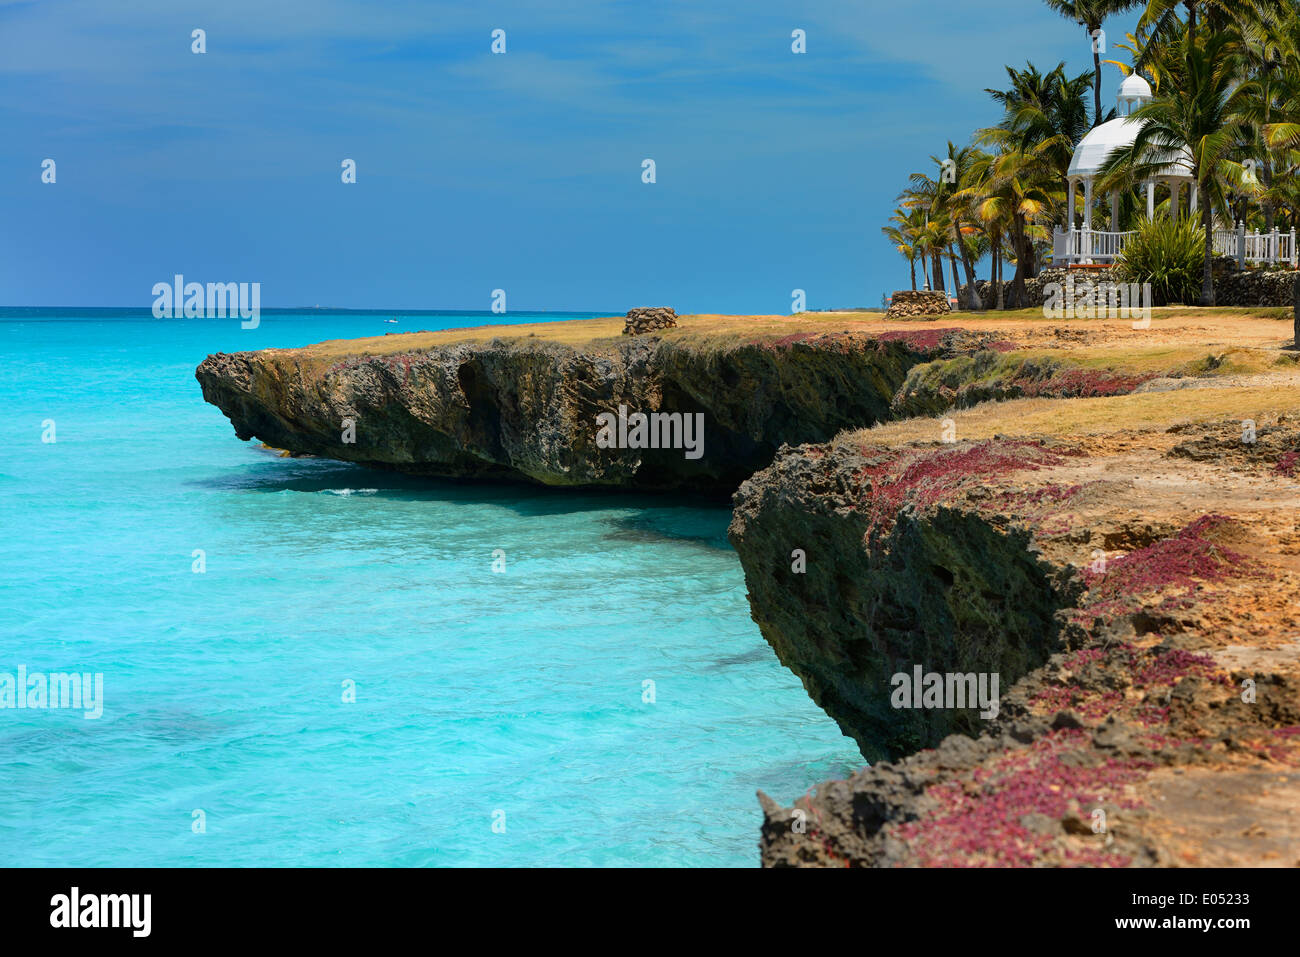 Lava rock shore with blow hole wells Palm trees and gazebo at Varadero Cuba resort with turquoise ocean - Stock Image